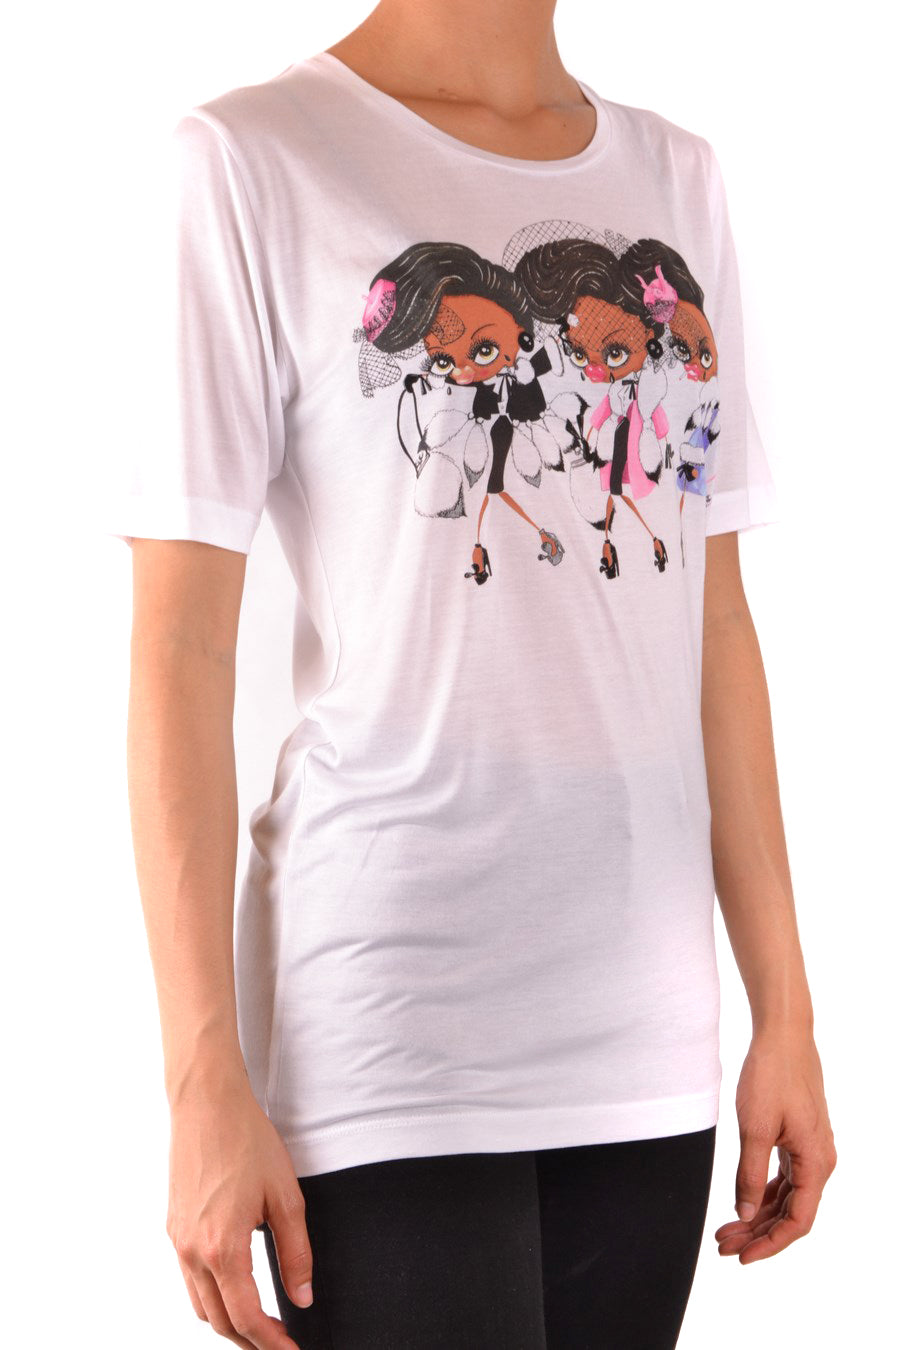 Tshirt Short Sleeves Dsquared-Tshirt Short Sleeves - WOMAN-Product Details Terms: New With LabelYear: 2018Main Color: WhiteGender: WomanMade In: ItalyManufacturer Part Number: S22040 S72Gc0772Size: IntSeason: Spring / SummerClothing Type: T-ShirtComposition: Modal 100%-Keyomi-Sook